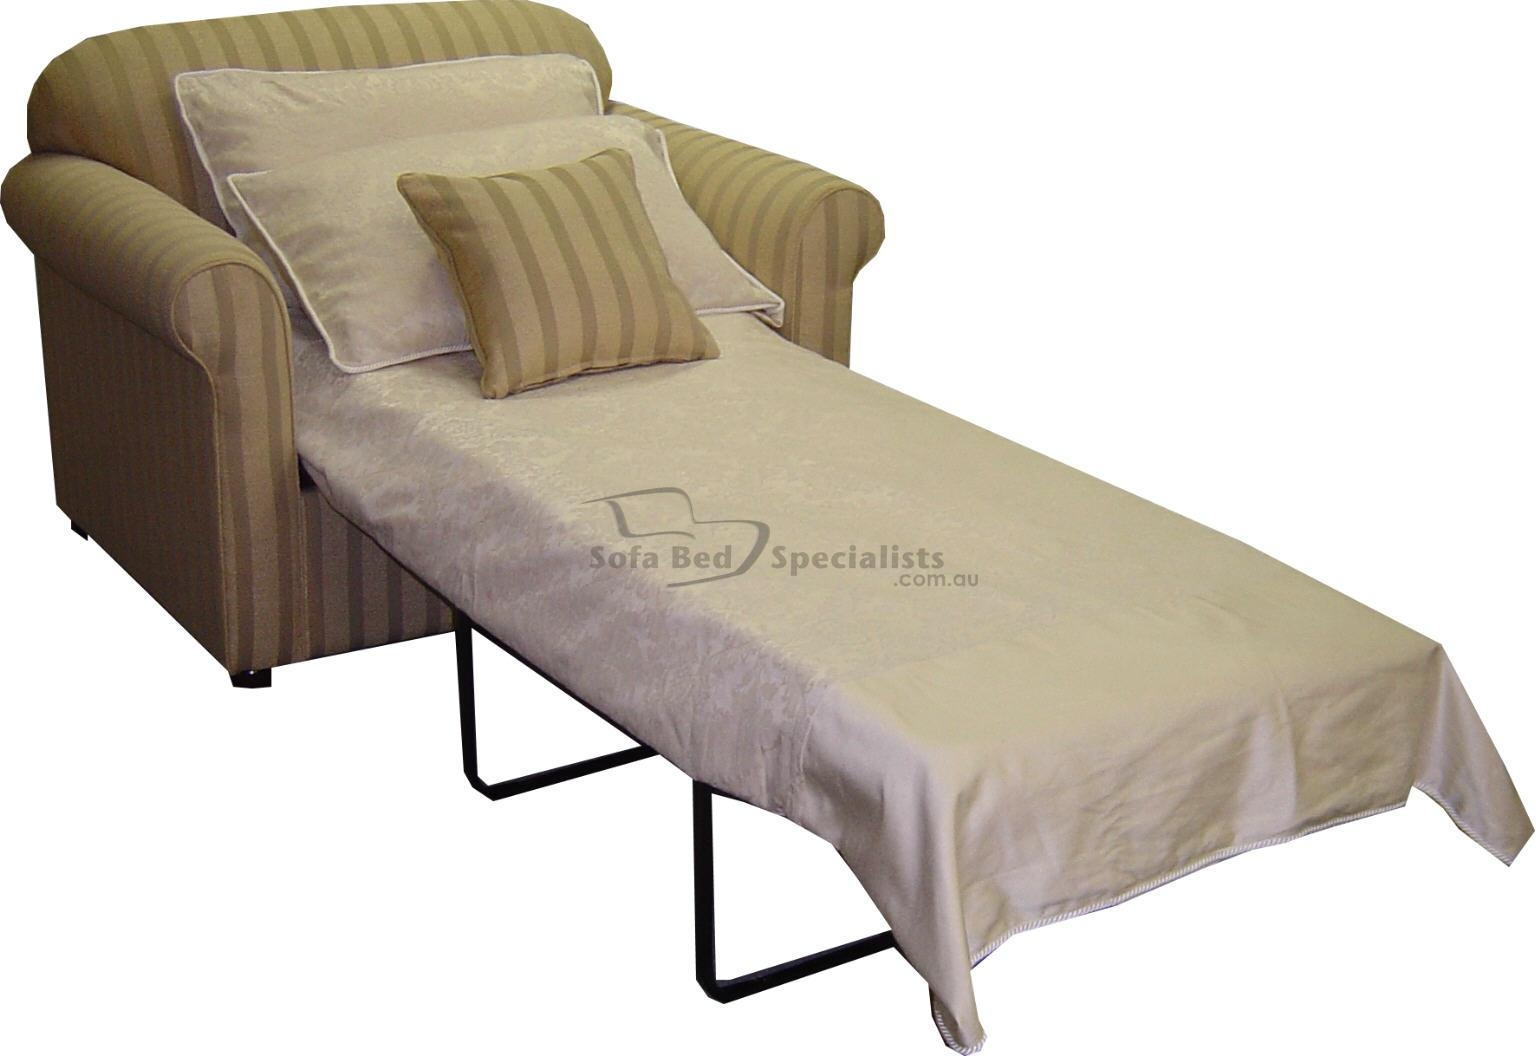 Sofas Center Single Chair Sofa Beds Model Ideas With Memory Regarding Single Sofa Bed Chairs (Image 12 of 15)